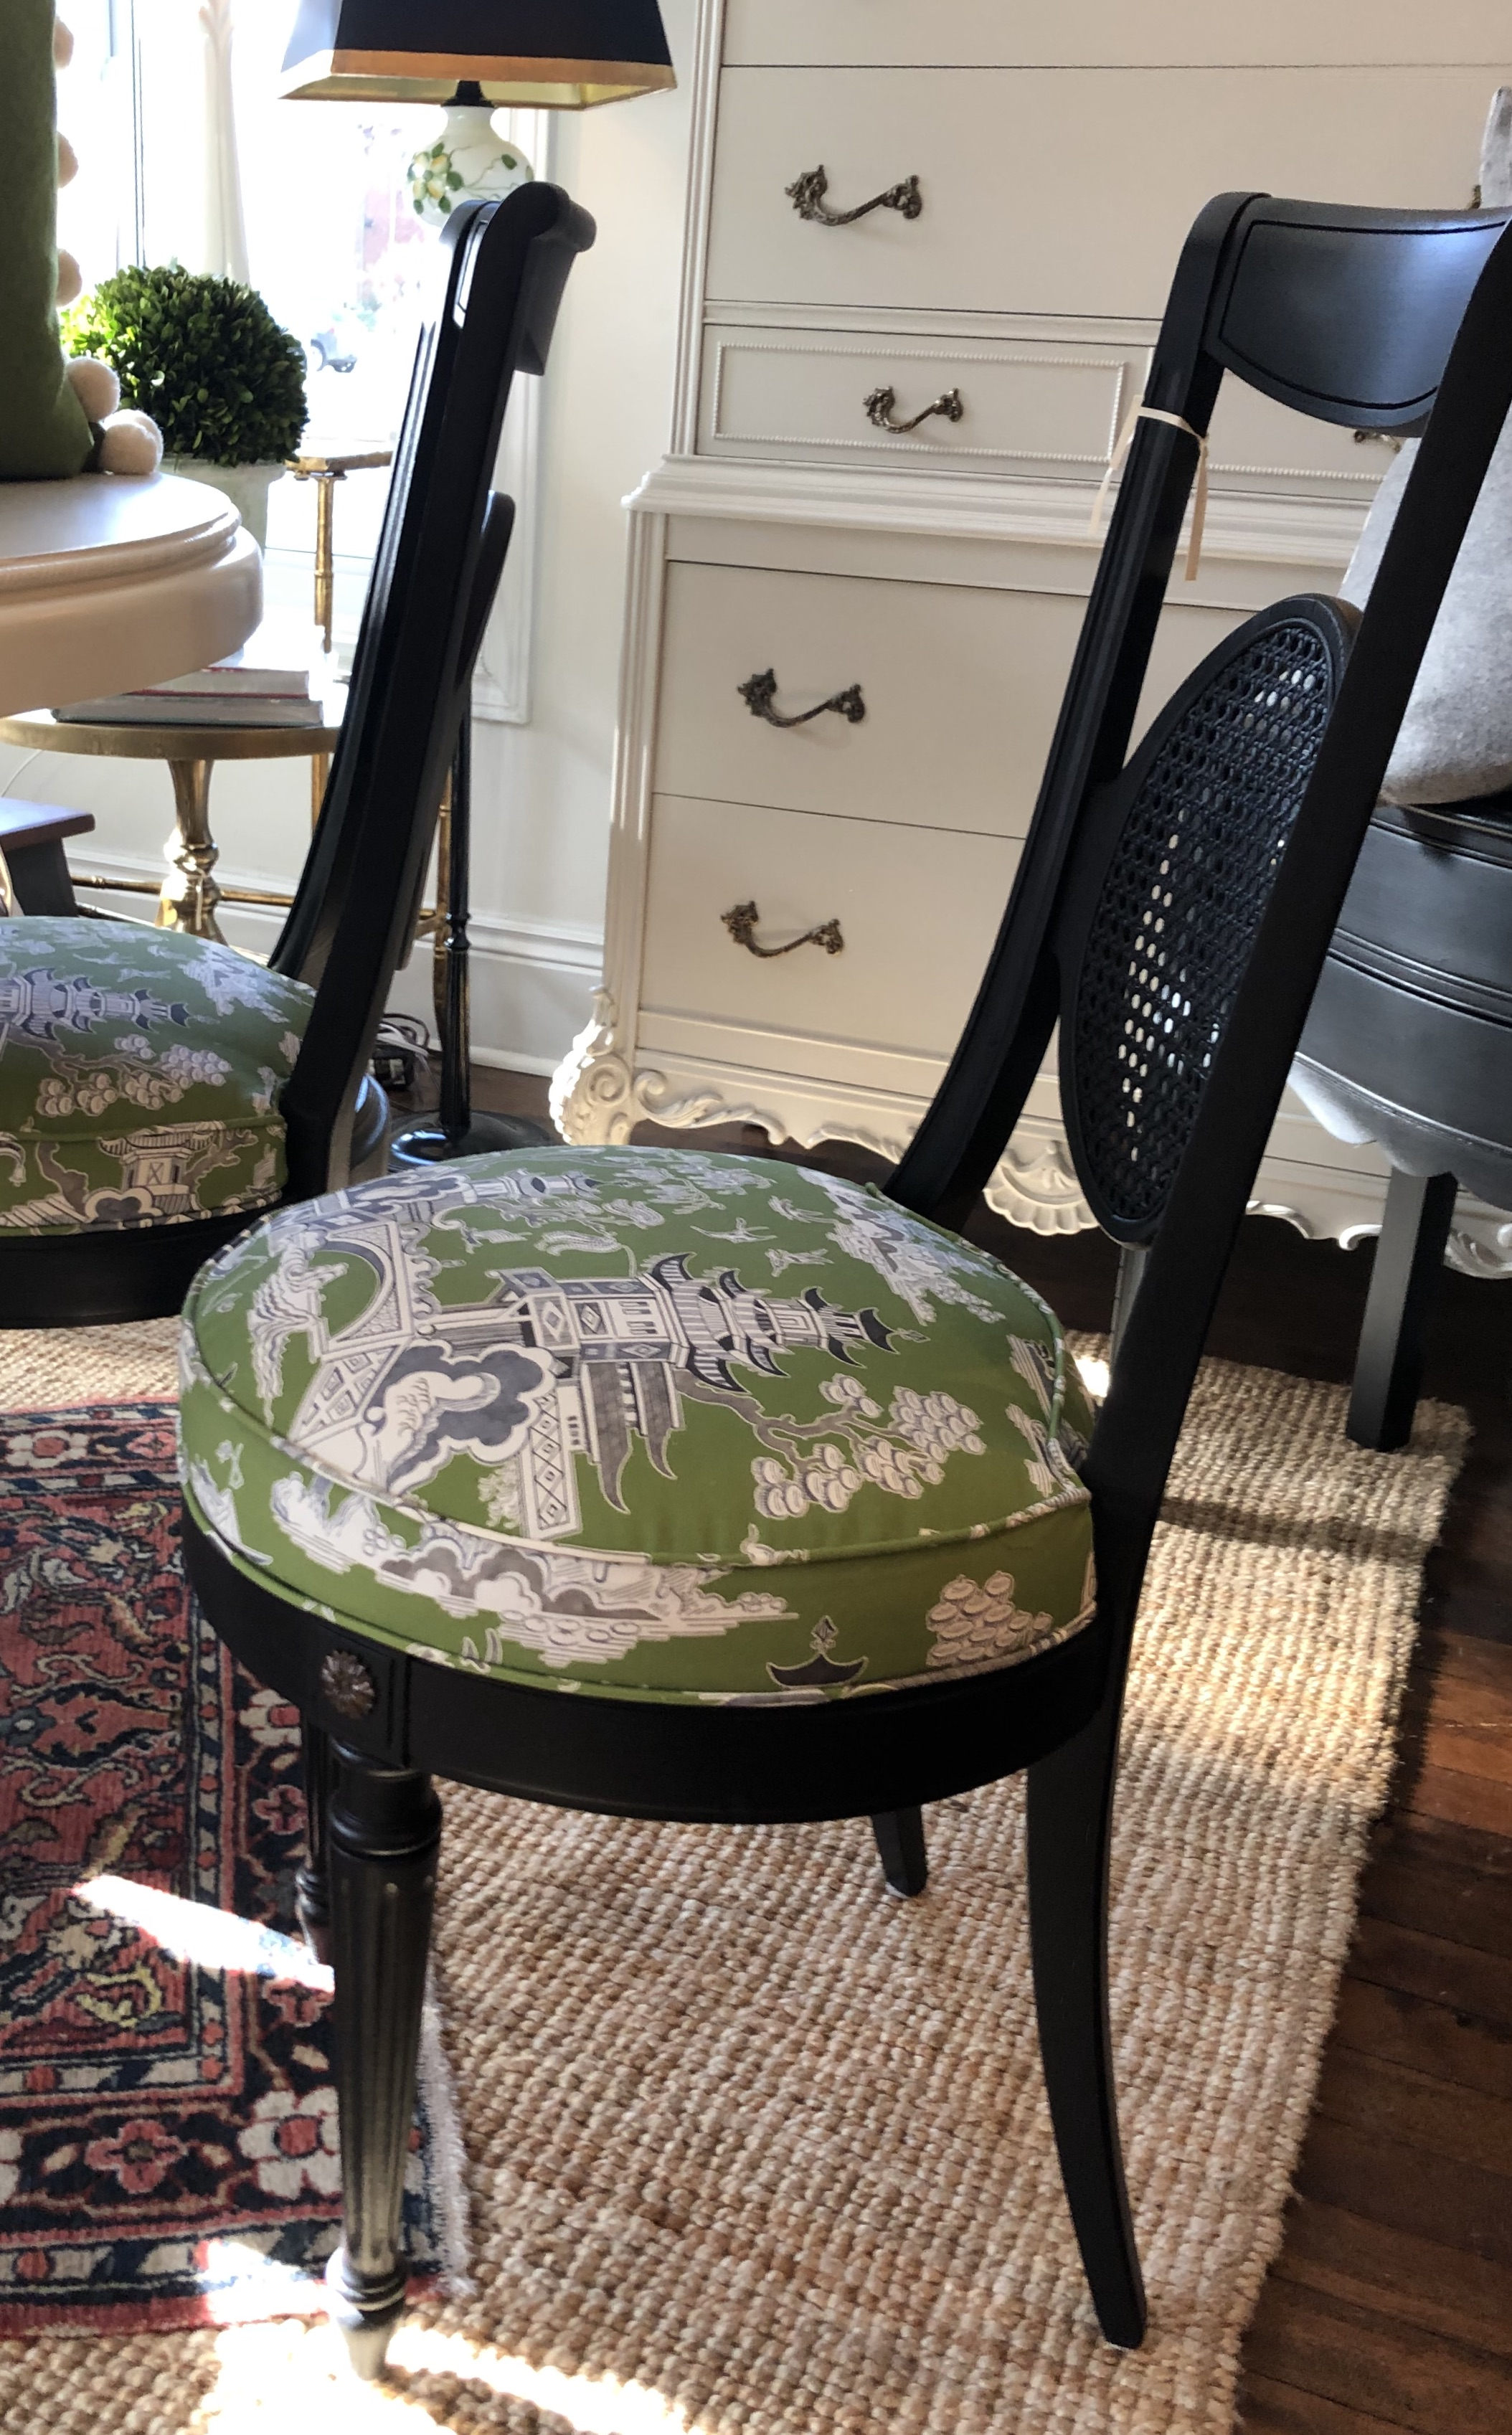 Painted and Reupholstered Vintage Chairs